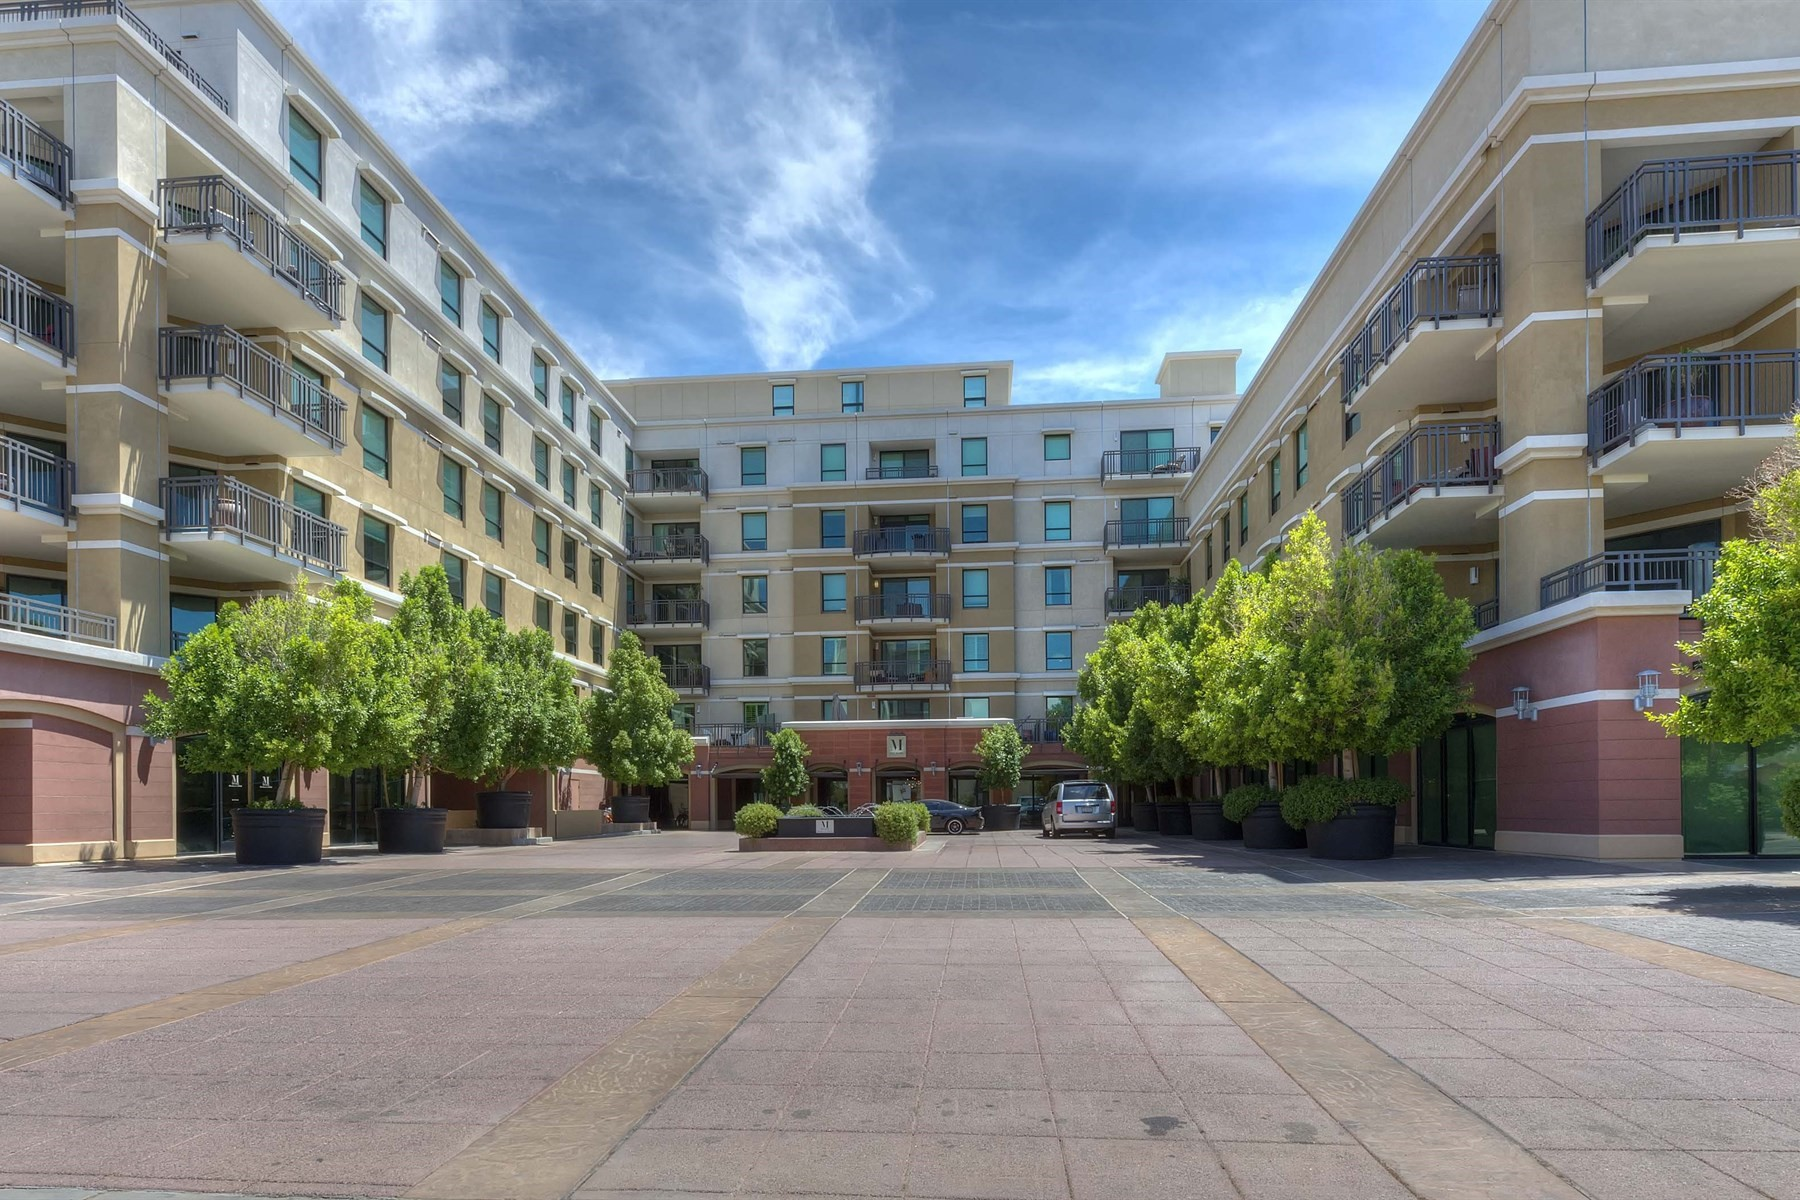 Apartamento para Venda às Luxury condominiums in The Mark 6803 E Main St #1105 Scottsdale, Arizona, 85251 Estados Unidos